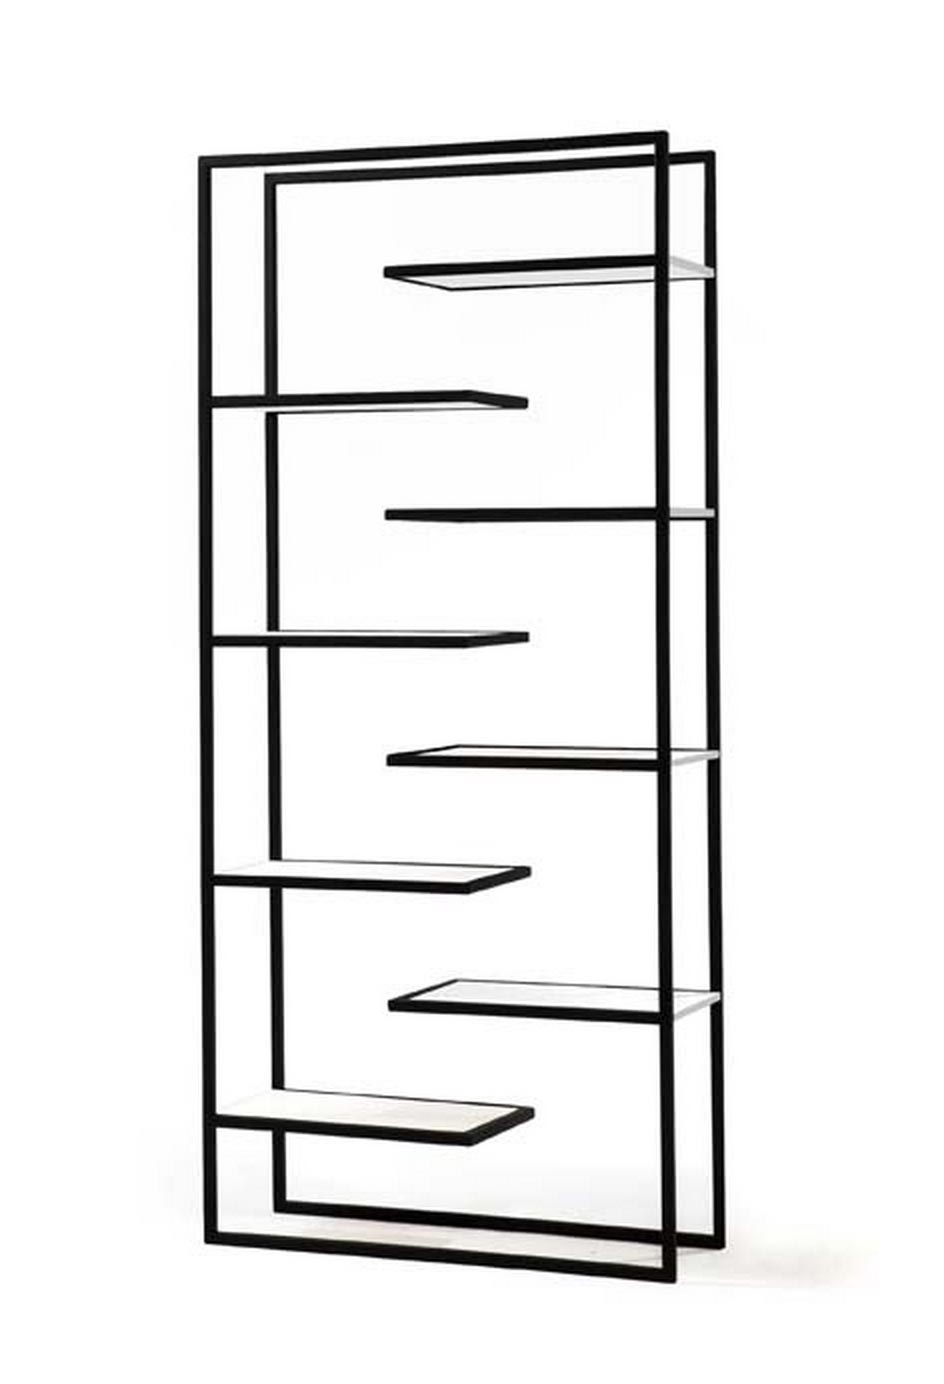 SCALA bookcase from FAKTURA